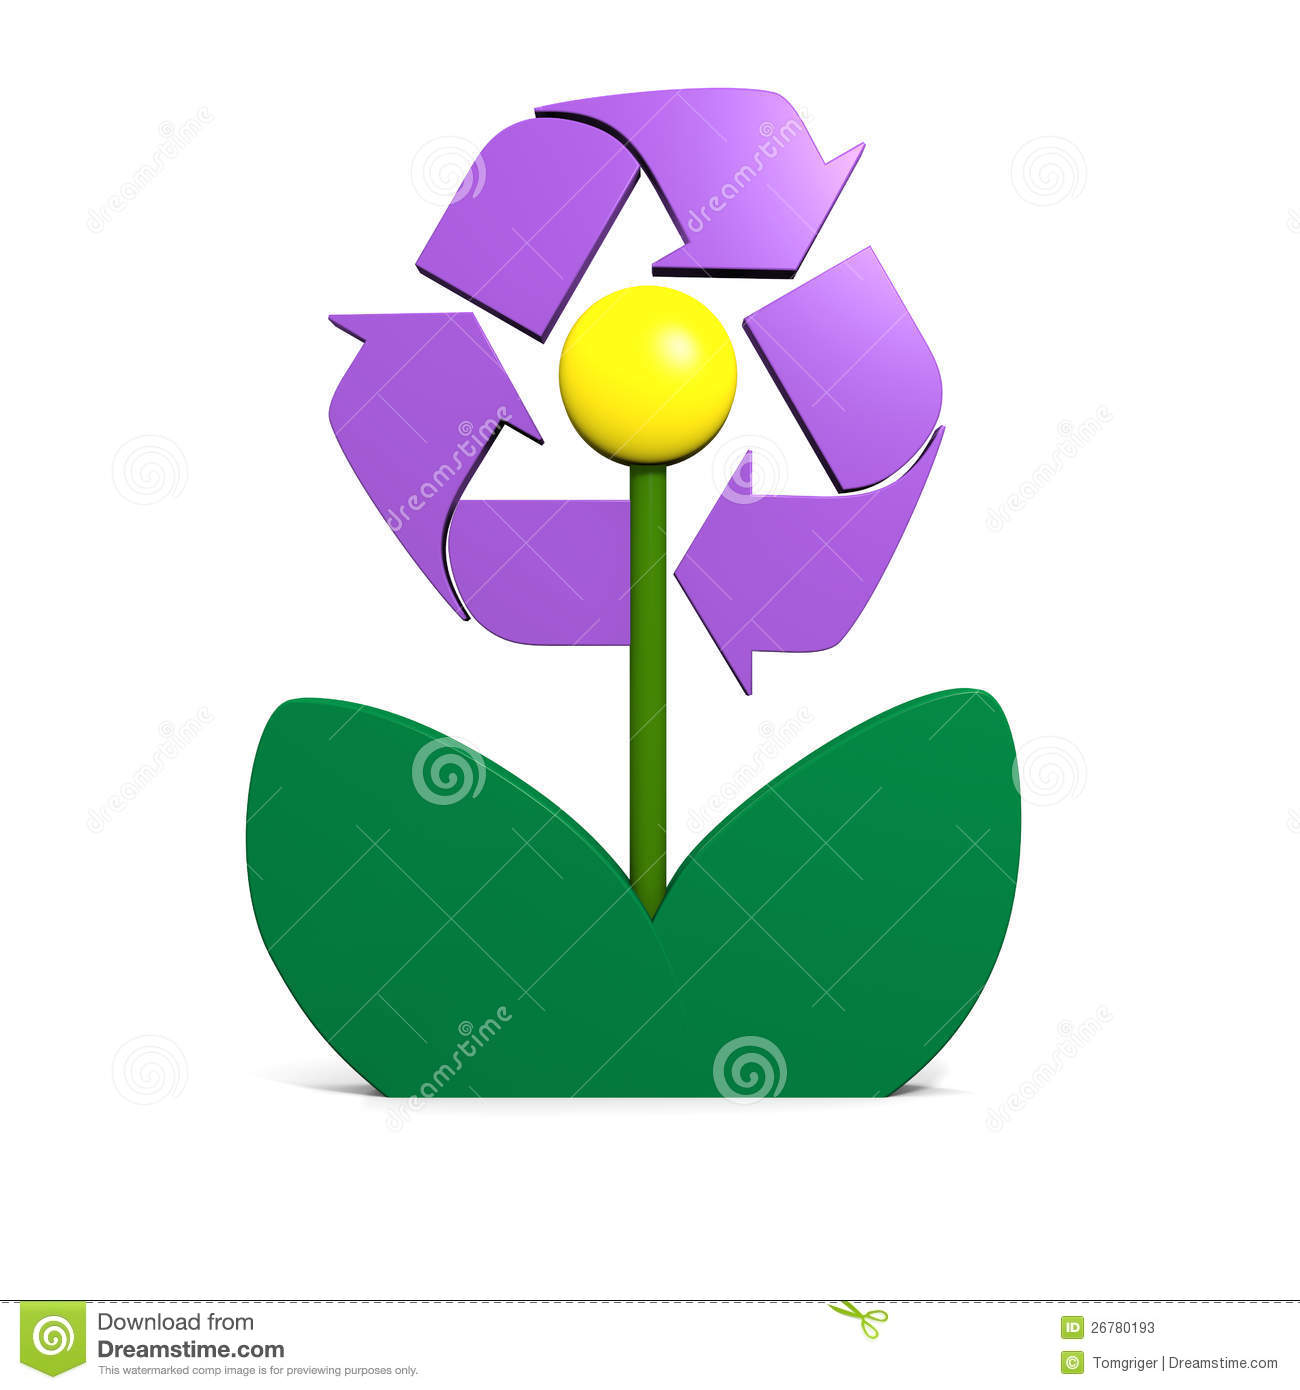 Recycling Symbol Flower Stock s Image